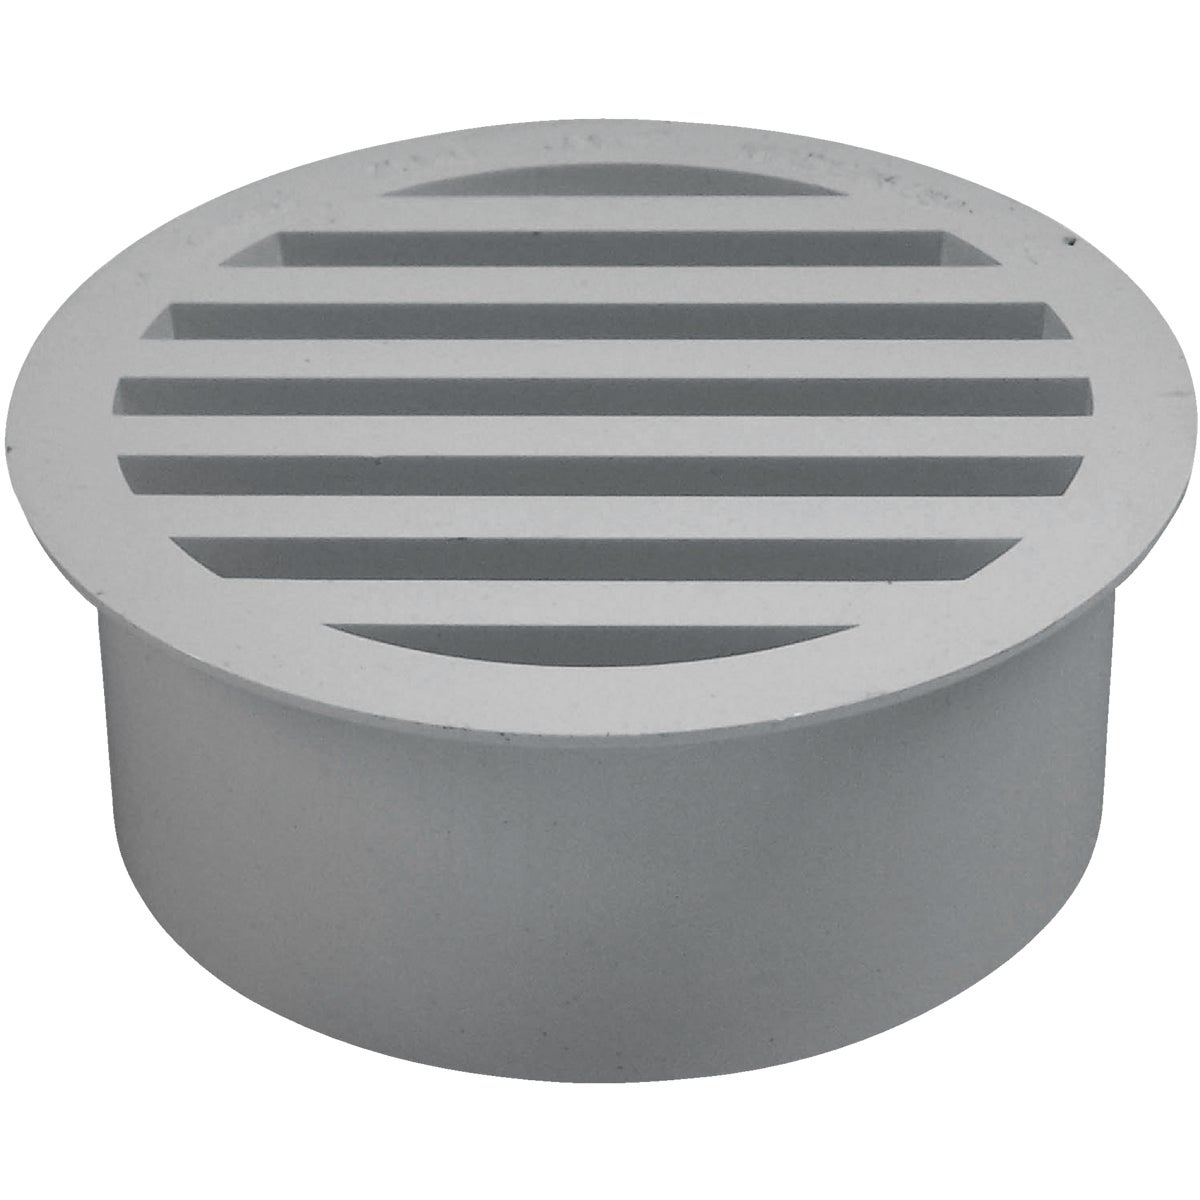 "4""PVC-DWV FLOOR STRAINER - 79140 by Genova Inc  Pvc Dwv"